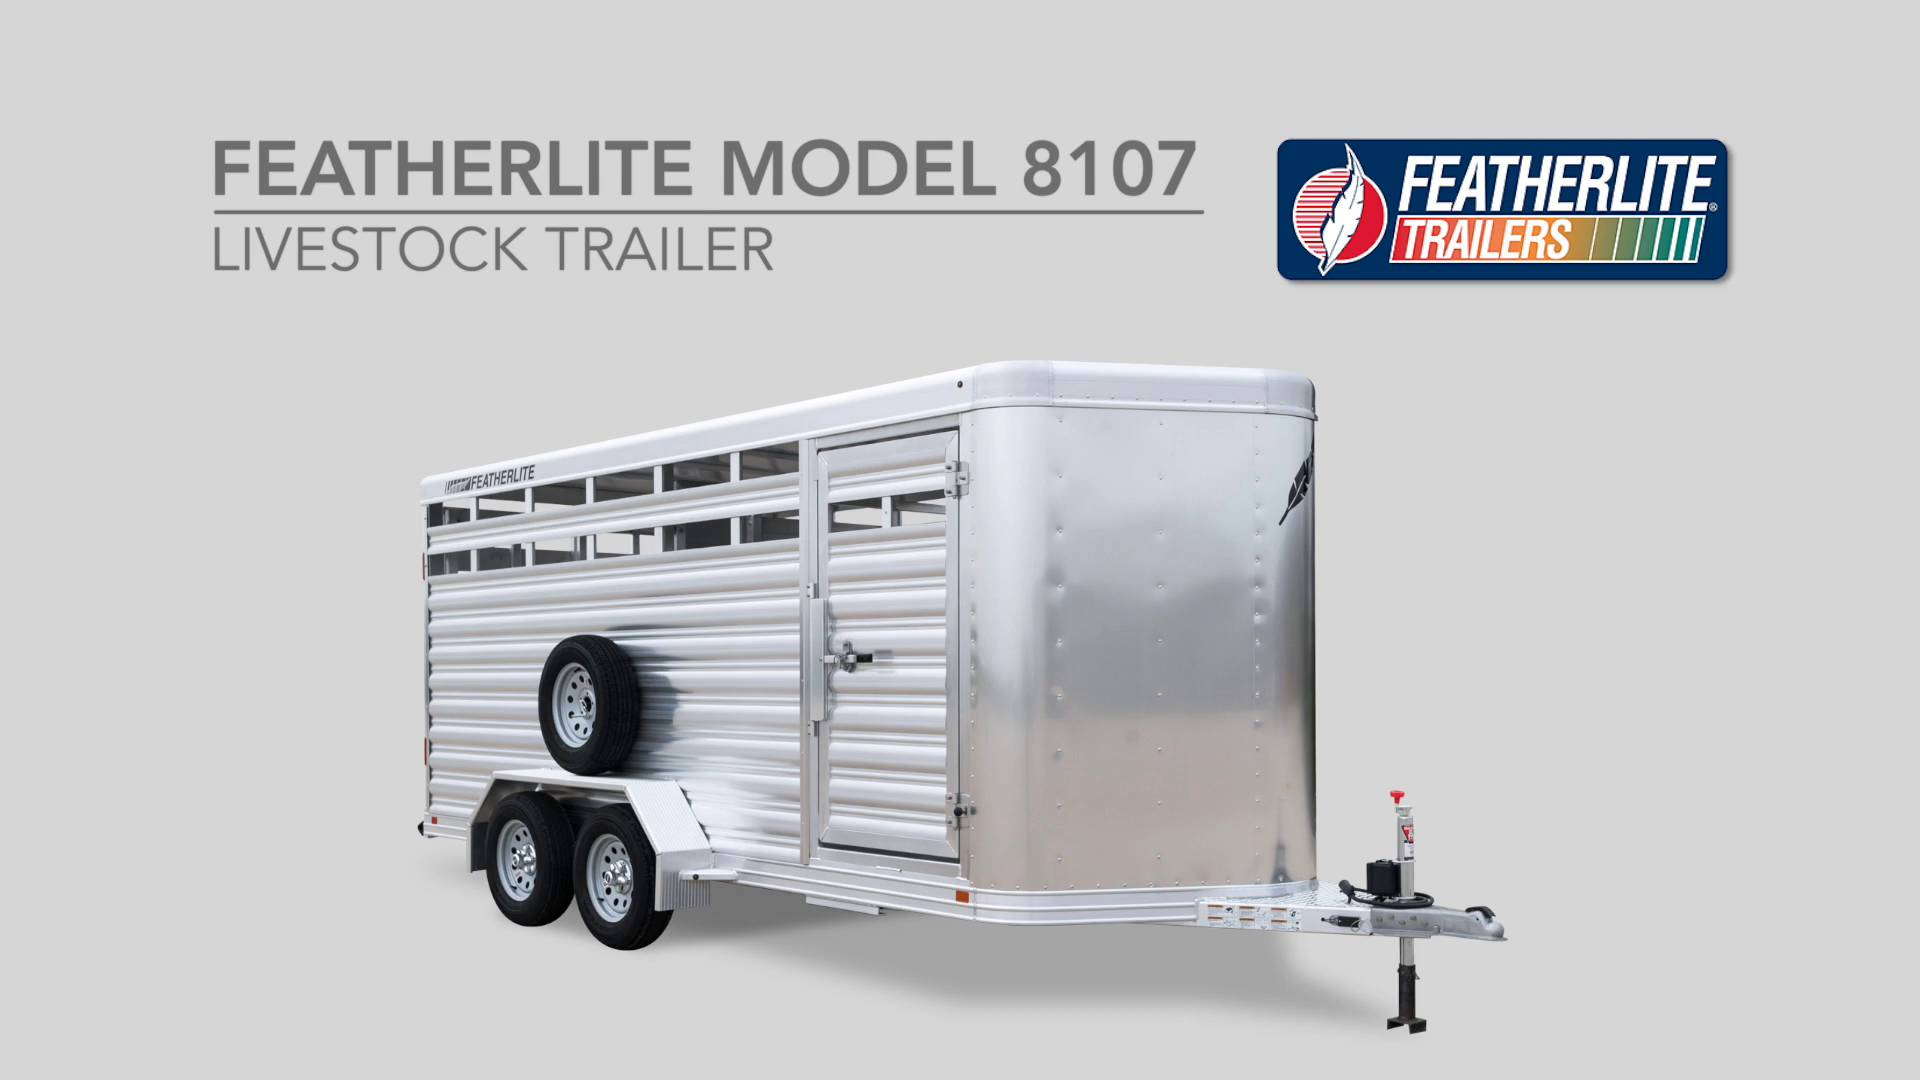 horse trailer electric brakes wiring diagram e46 m3 maf featherlite diagrams image free